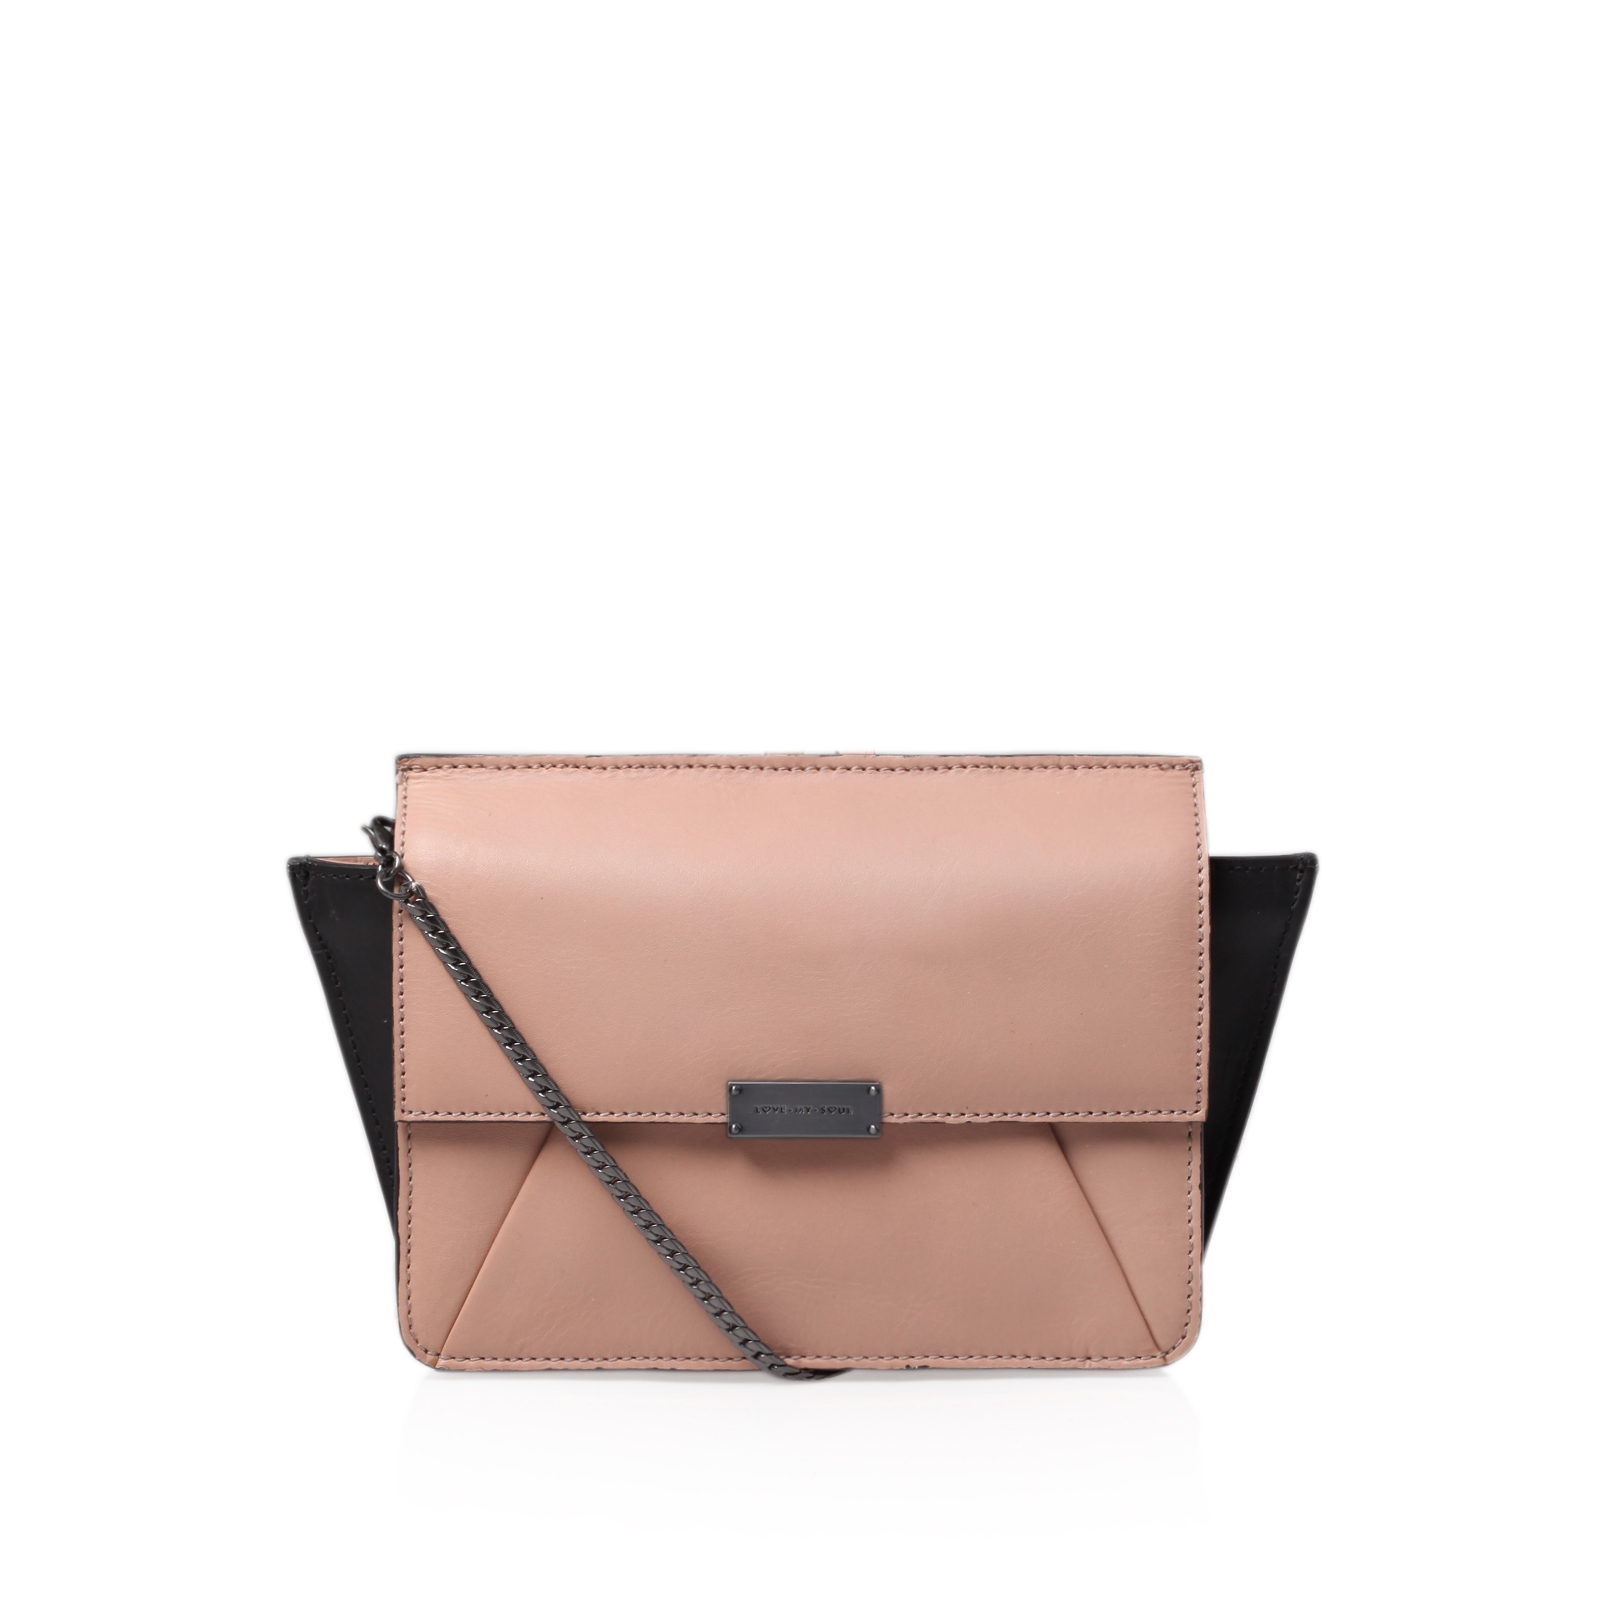 CLARICE LEATHER BAG